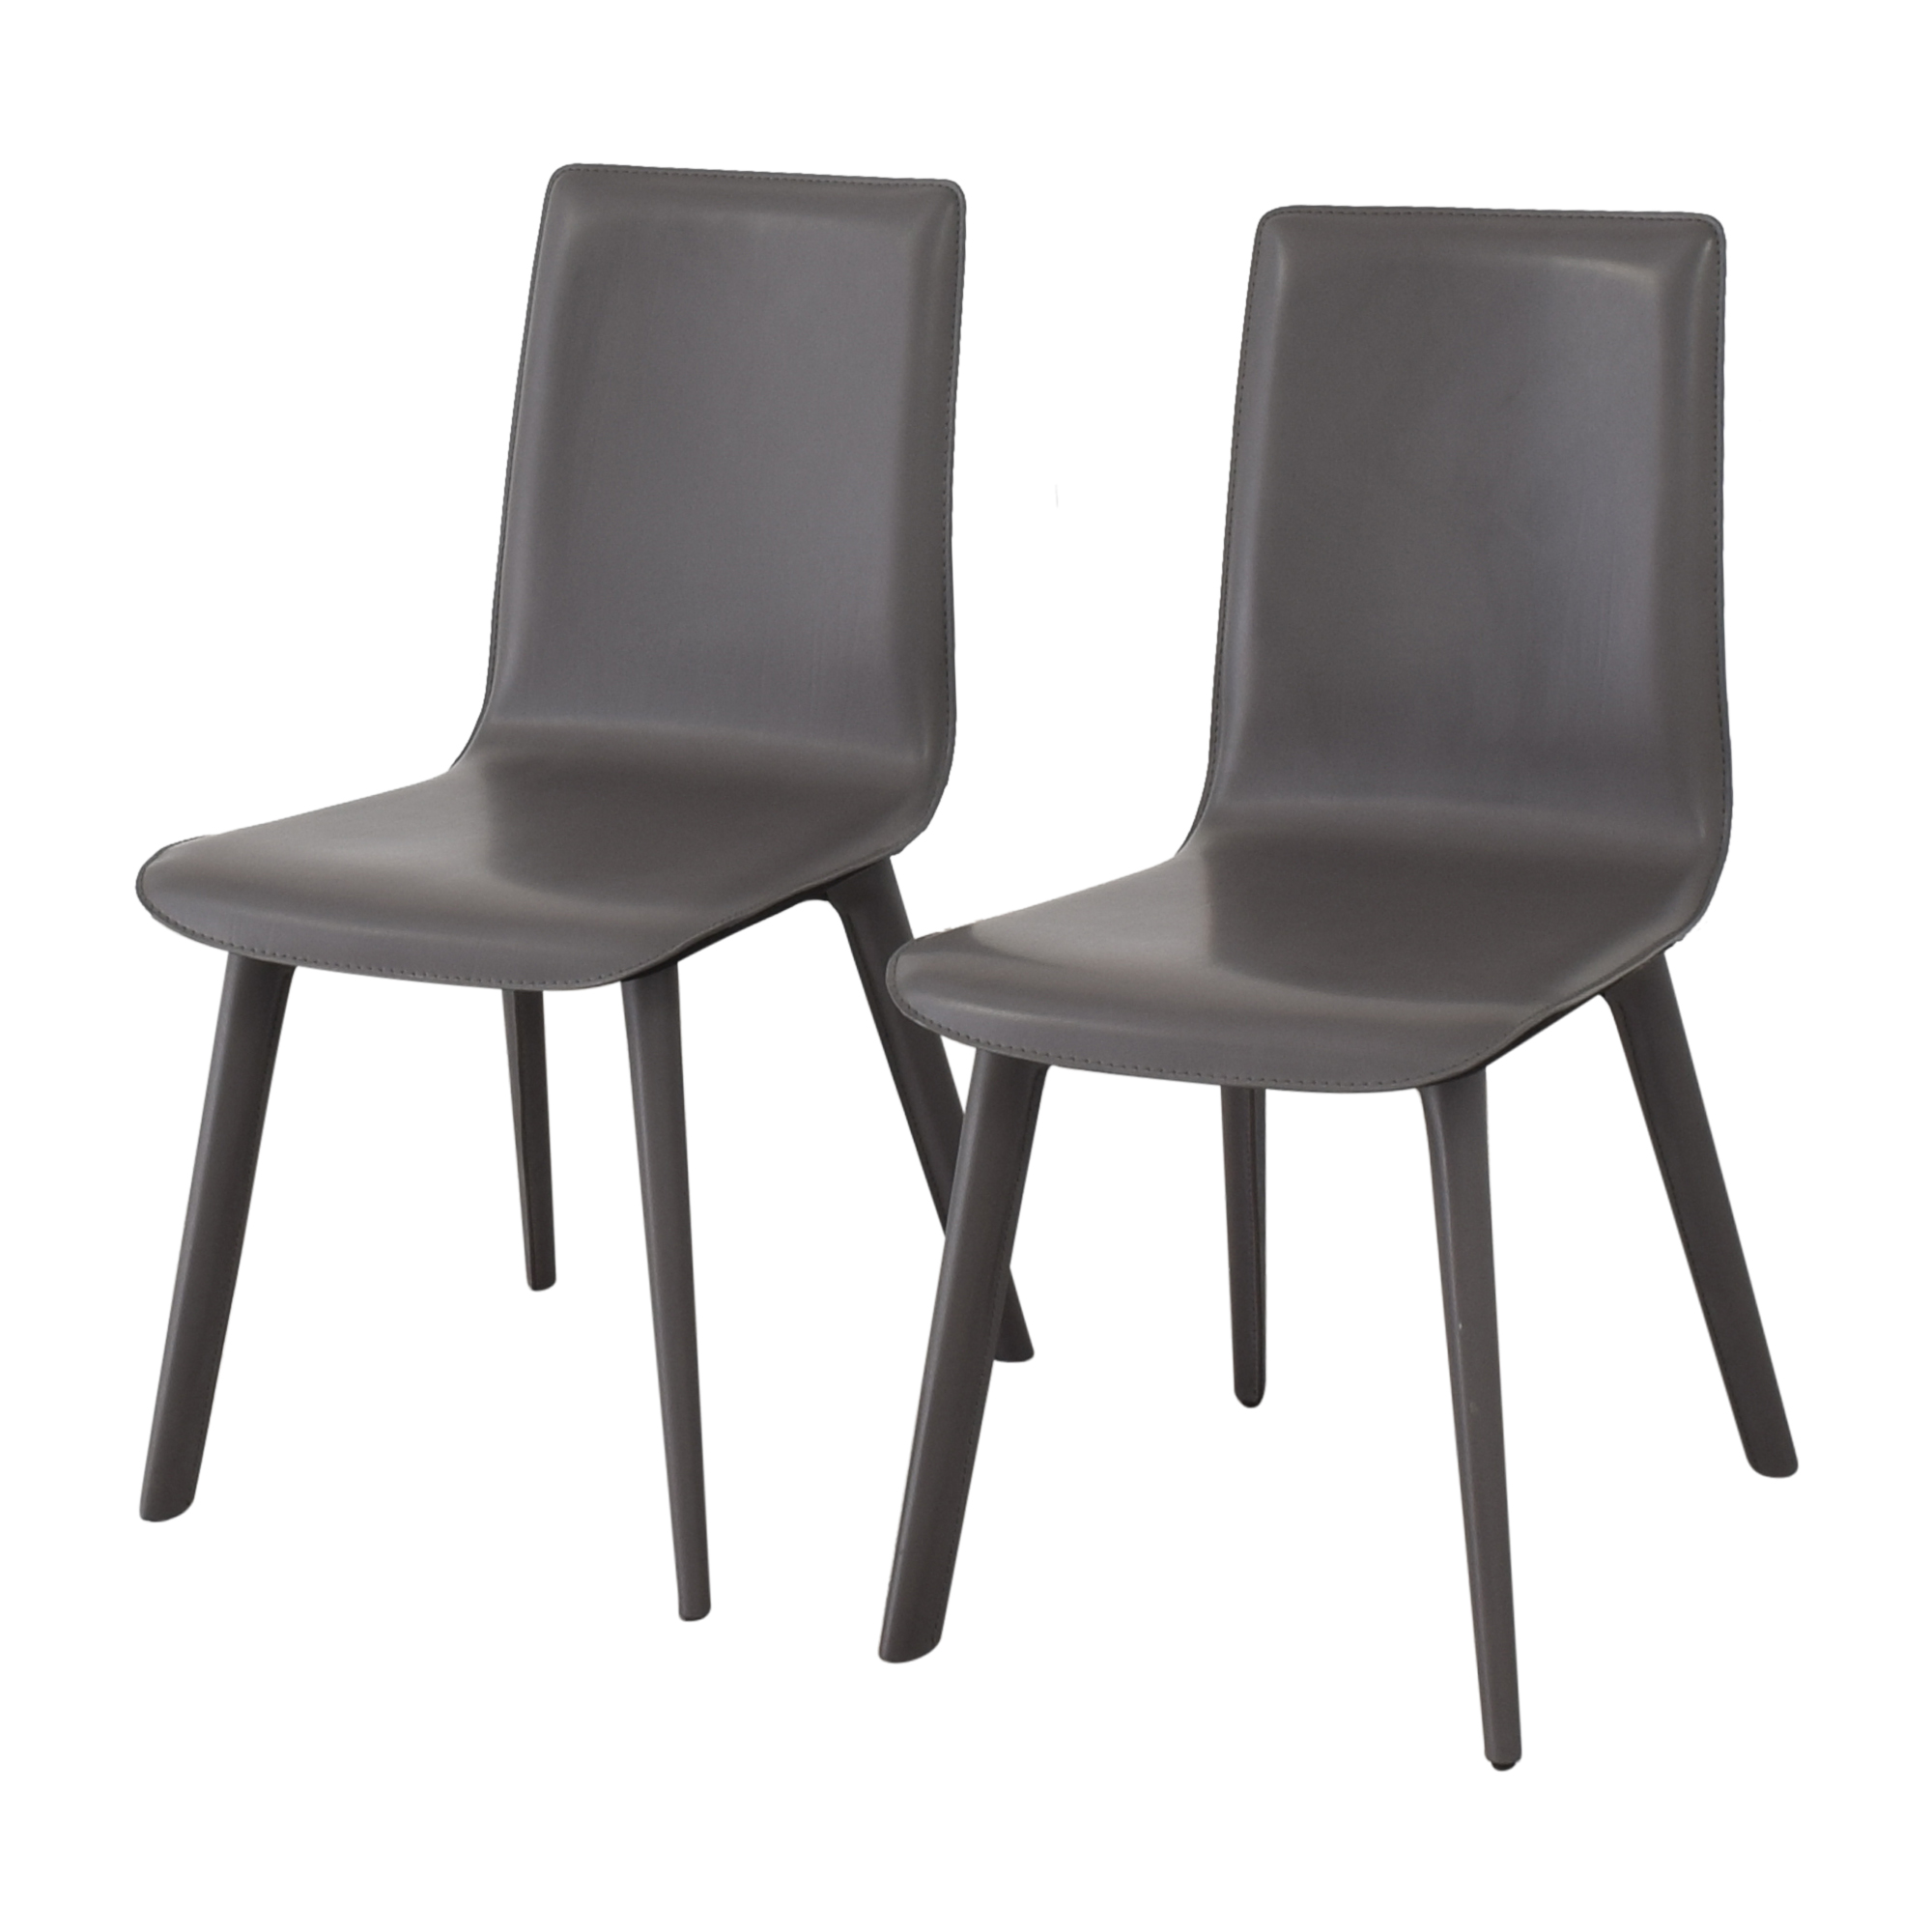 Room & Board Hirsch Dining Chairs / Dining Chairs